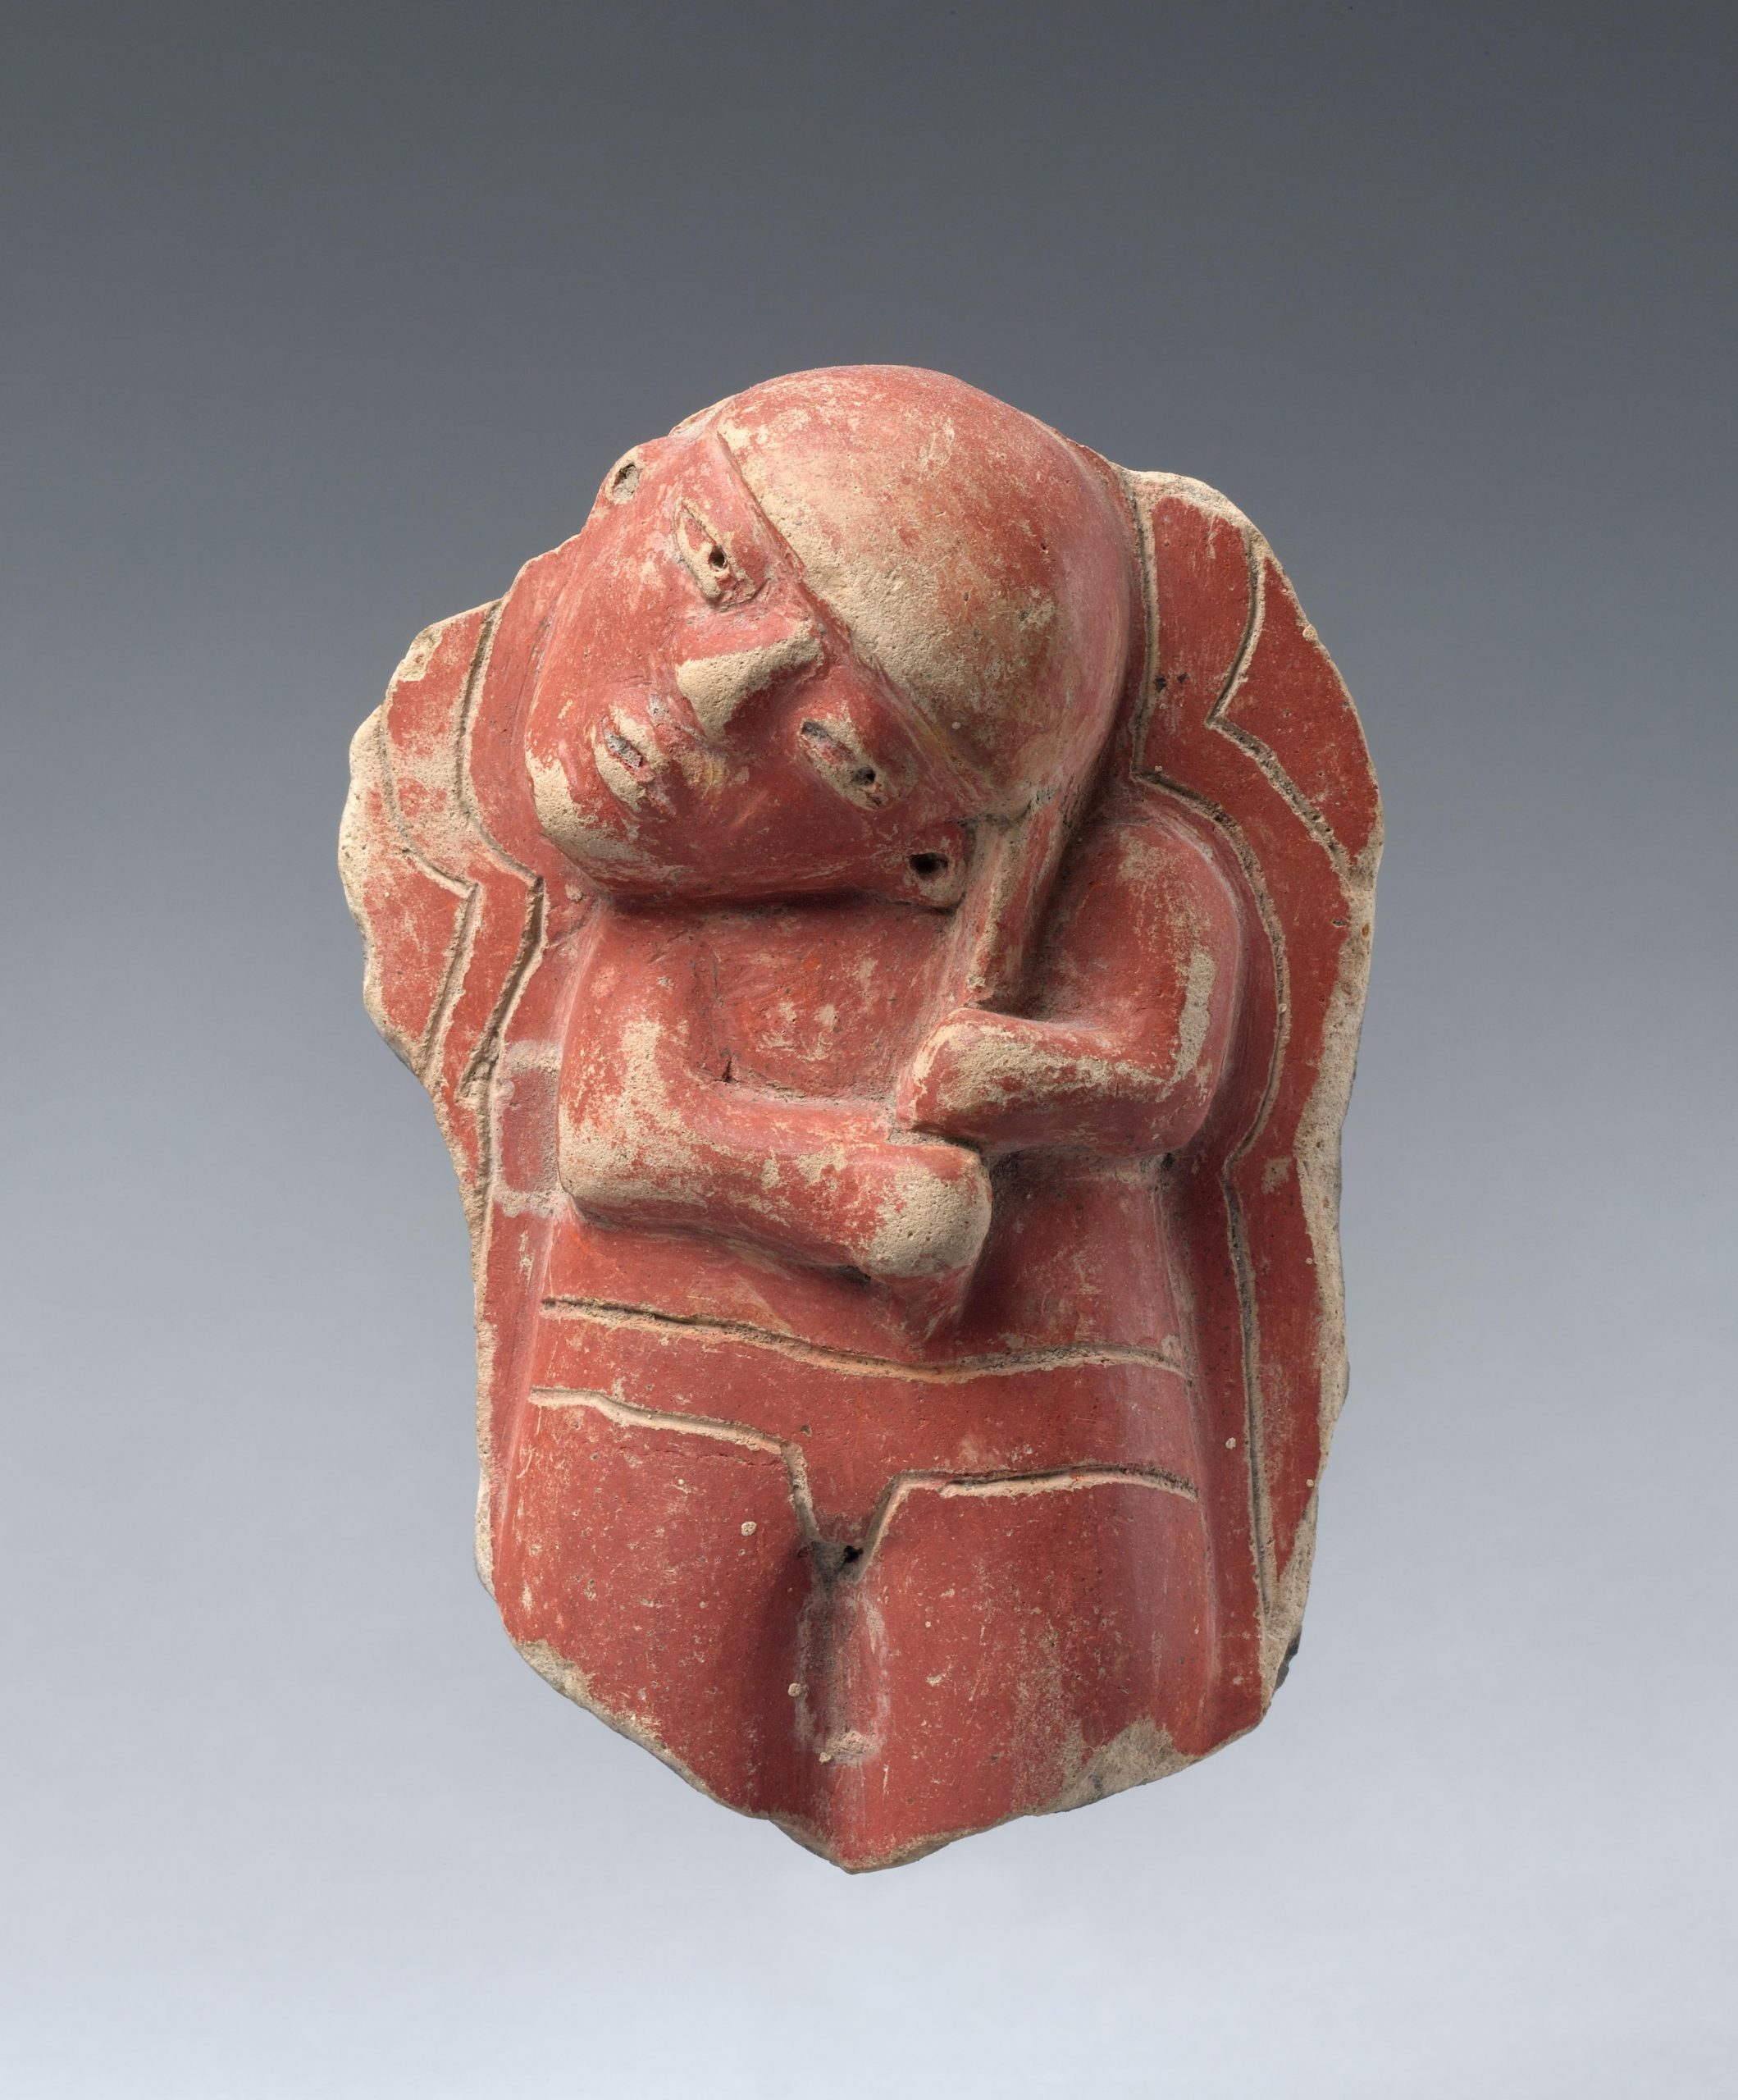 Ceramic fragment of a figure with a tilted head, painted in red.